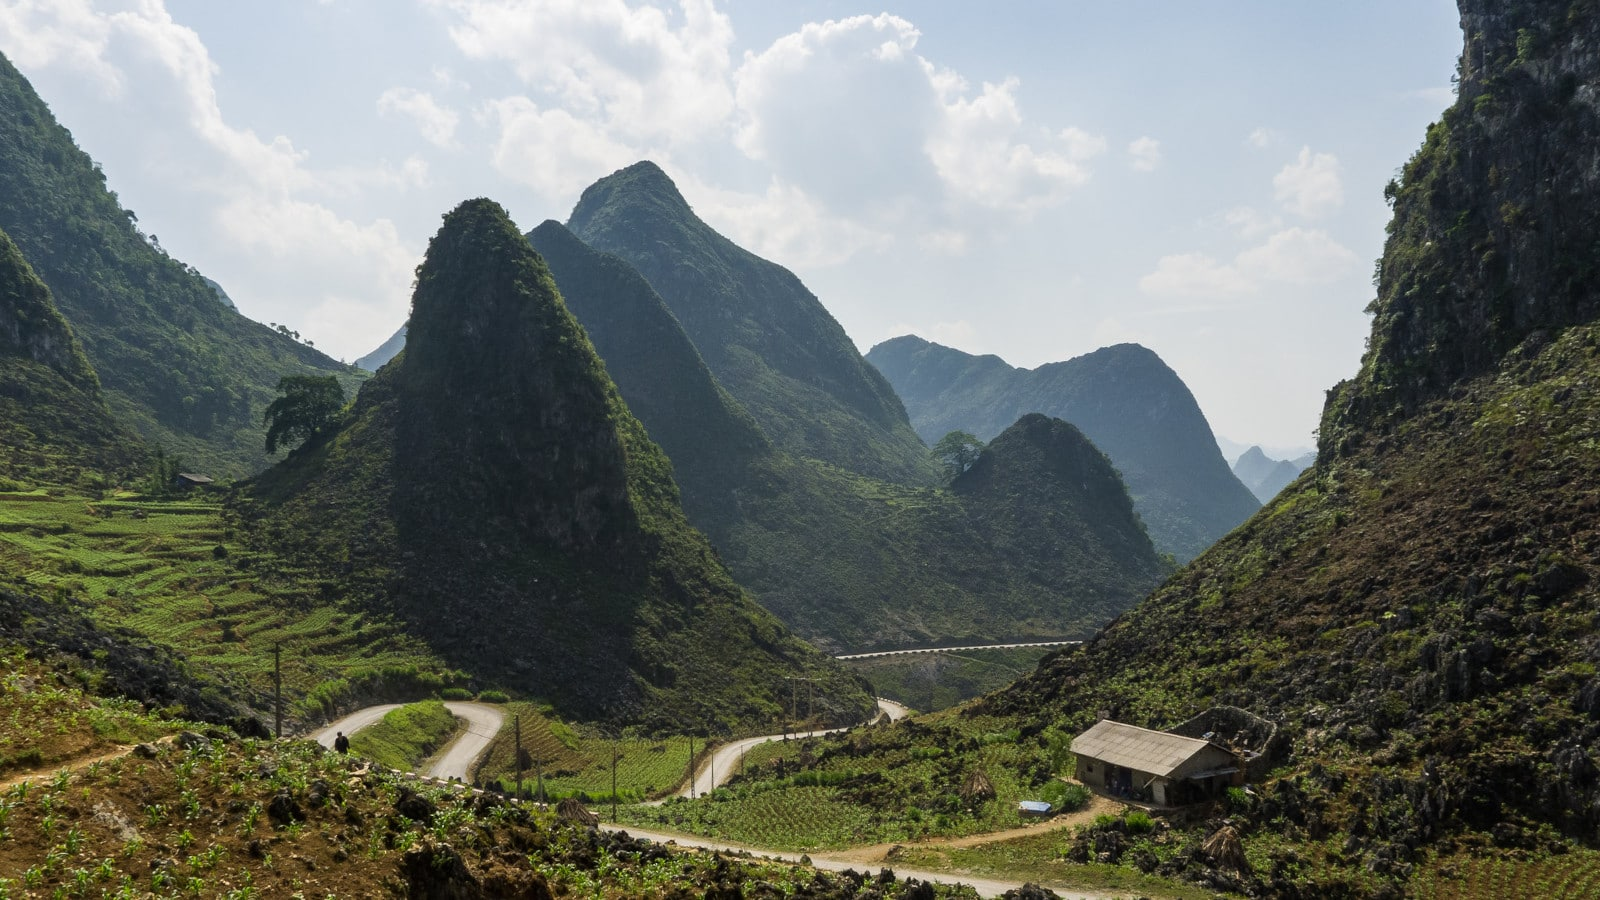 Image of the Ma Pi Leng Pass, part of the Ha Giang Loop